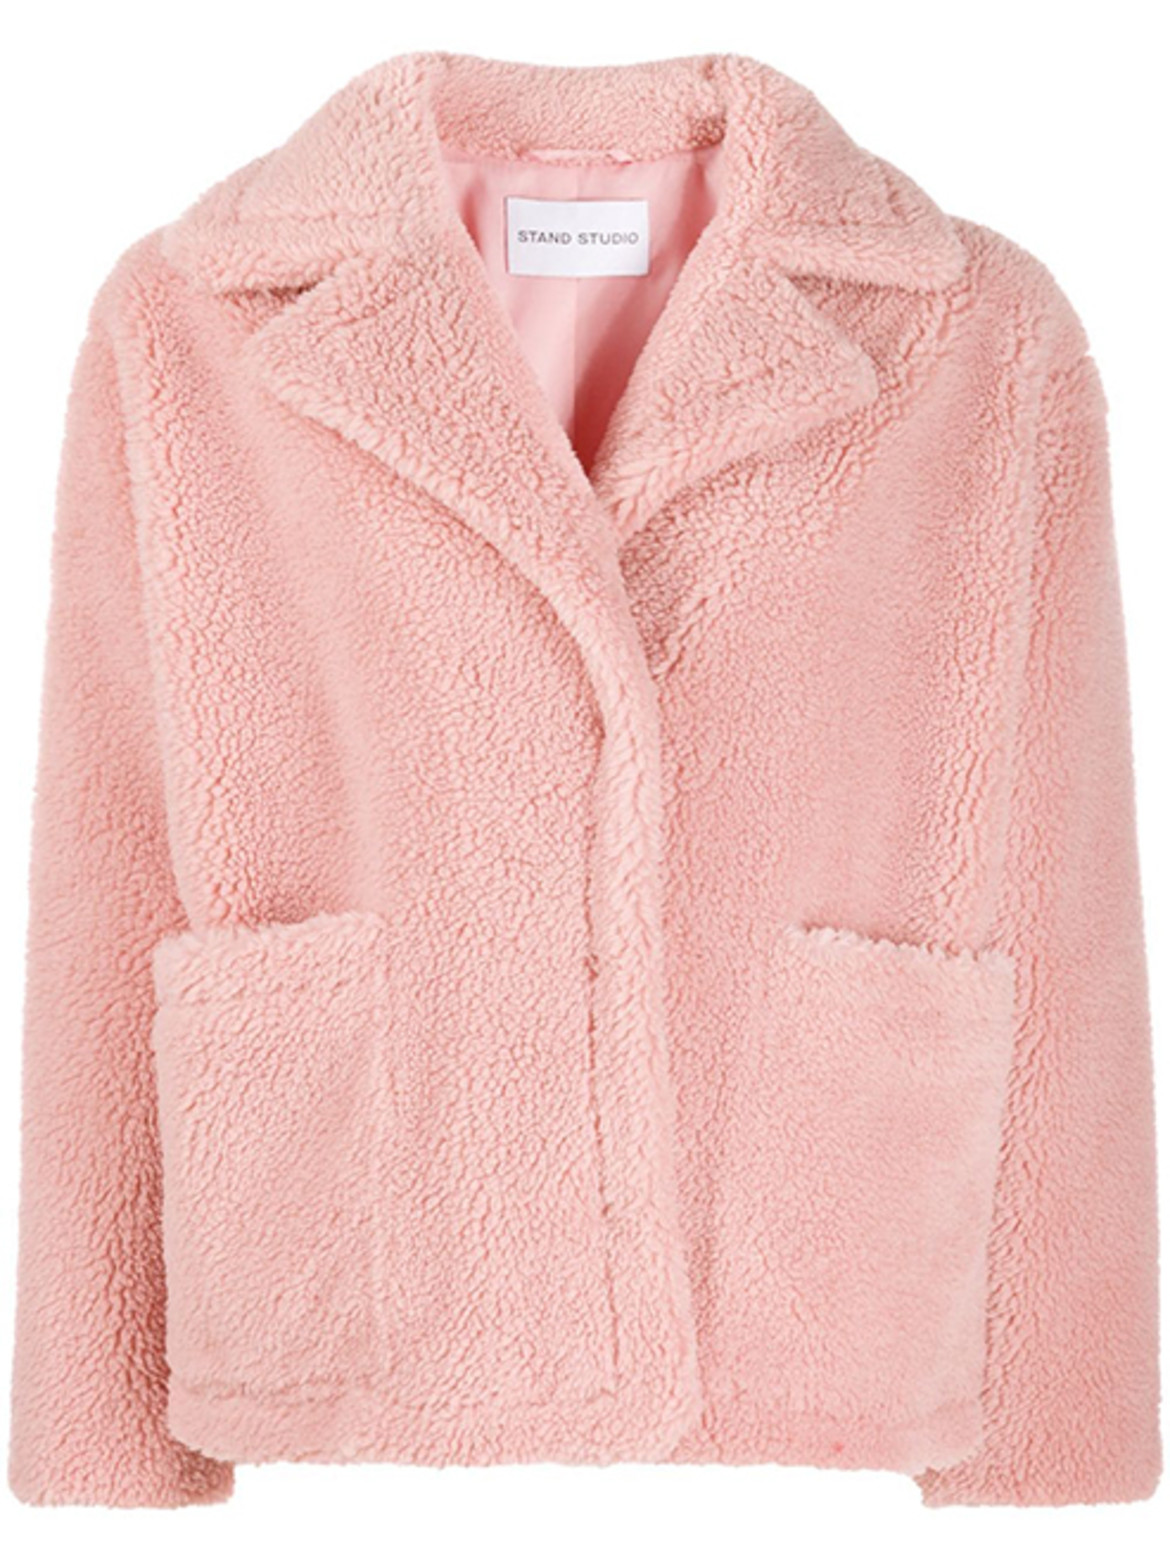 STAND STUDIO concealed fastening jacket HK$2,253 from Farfetch